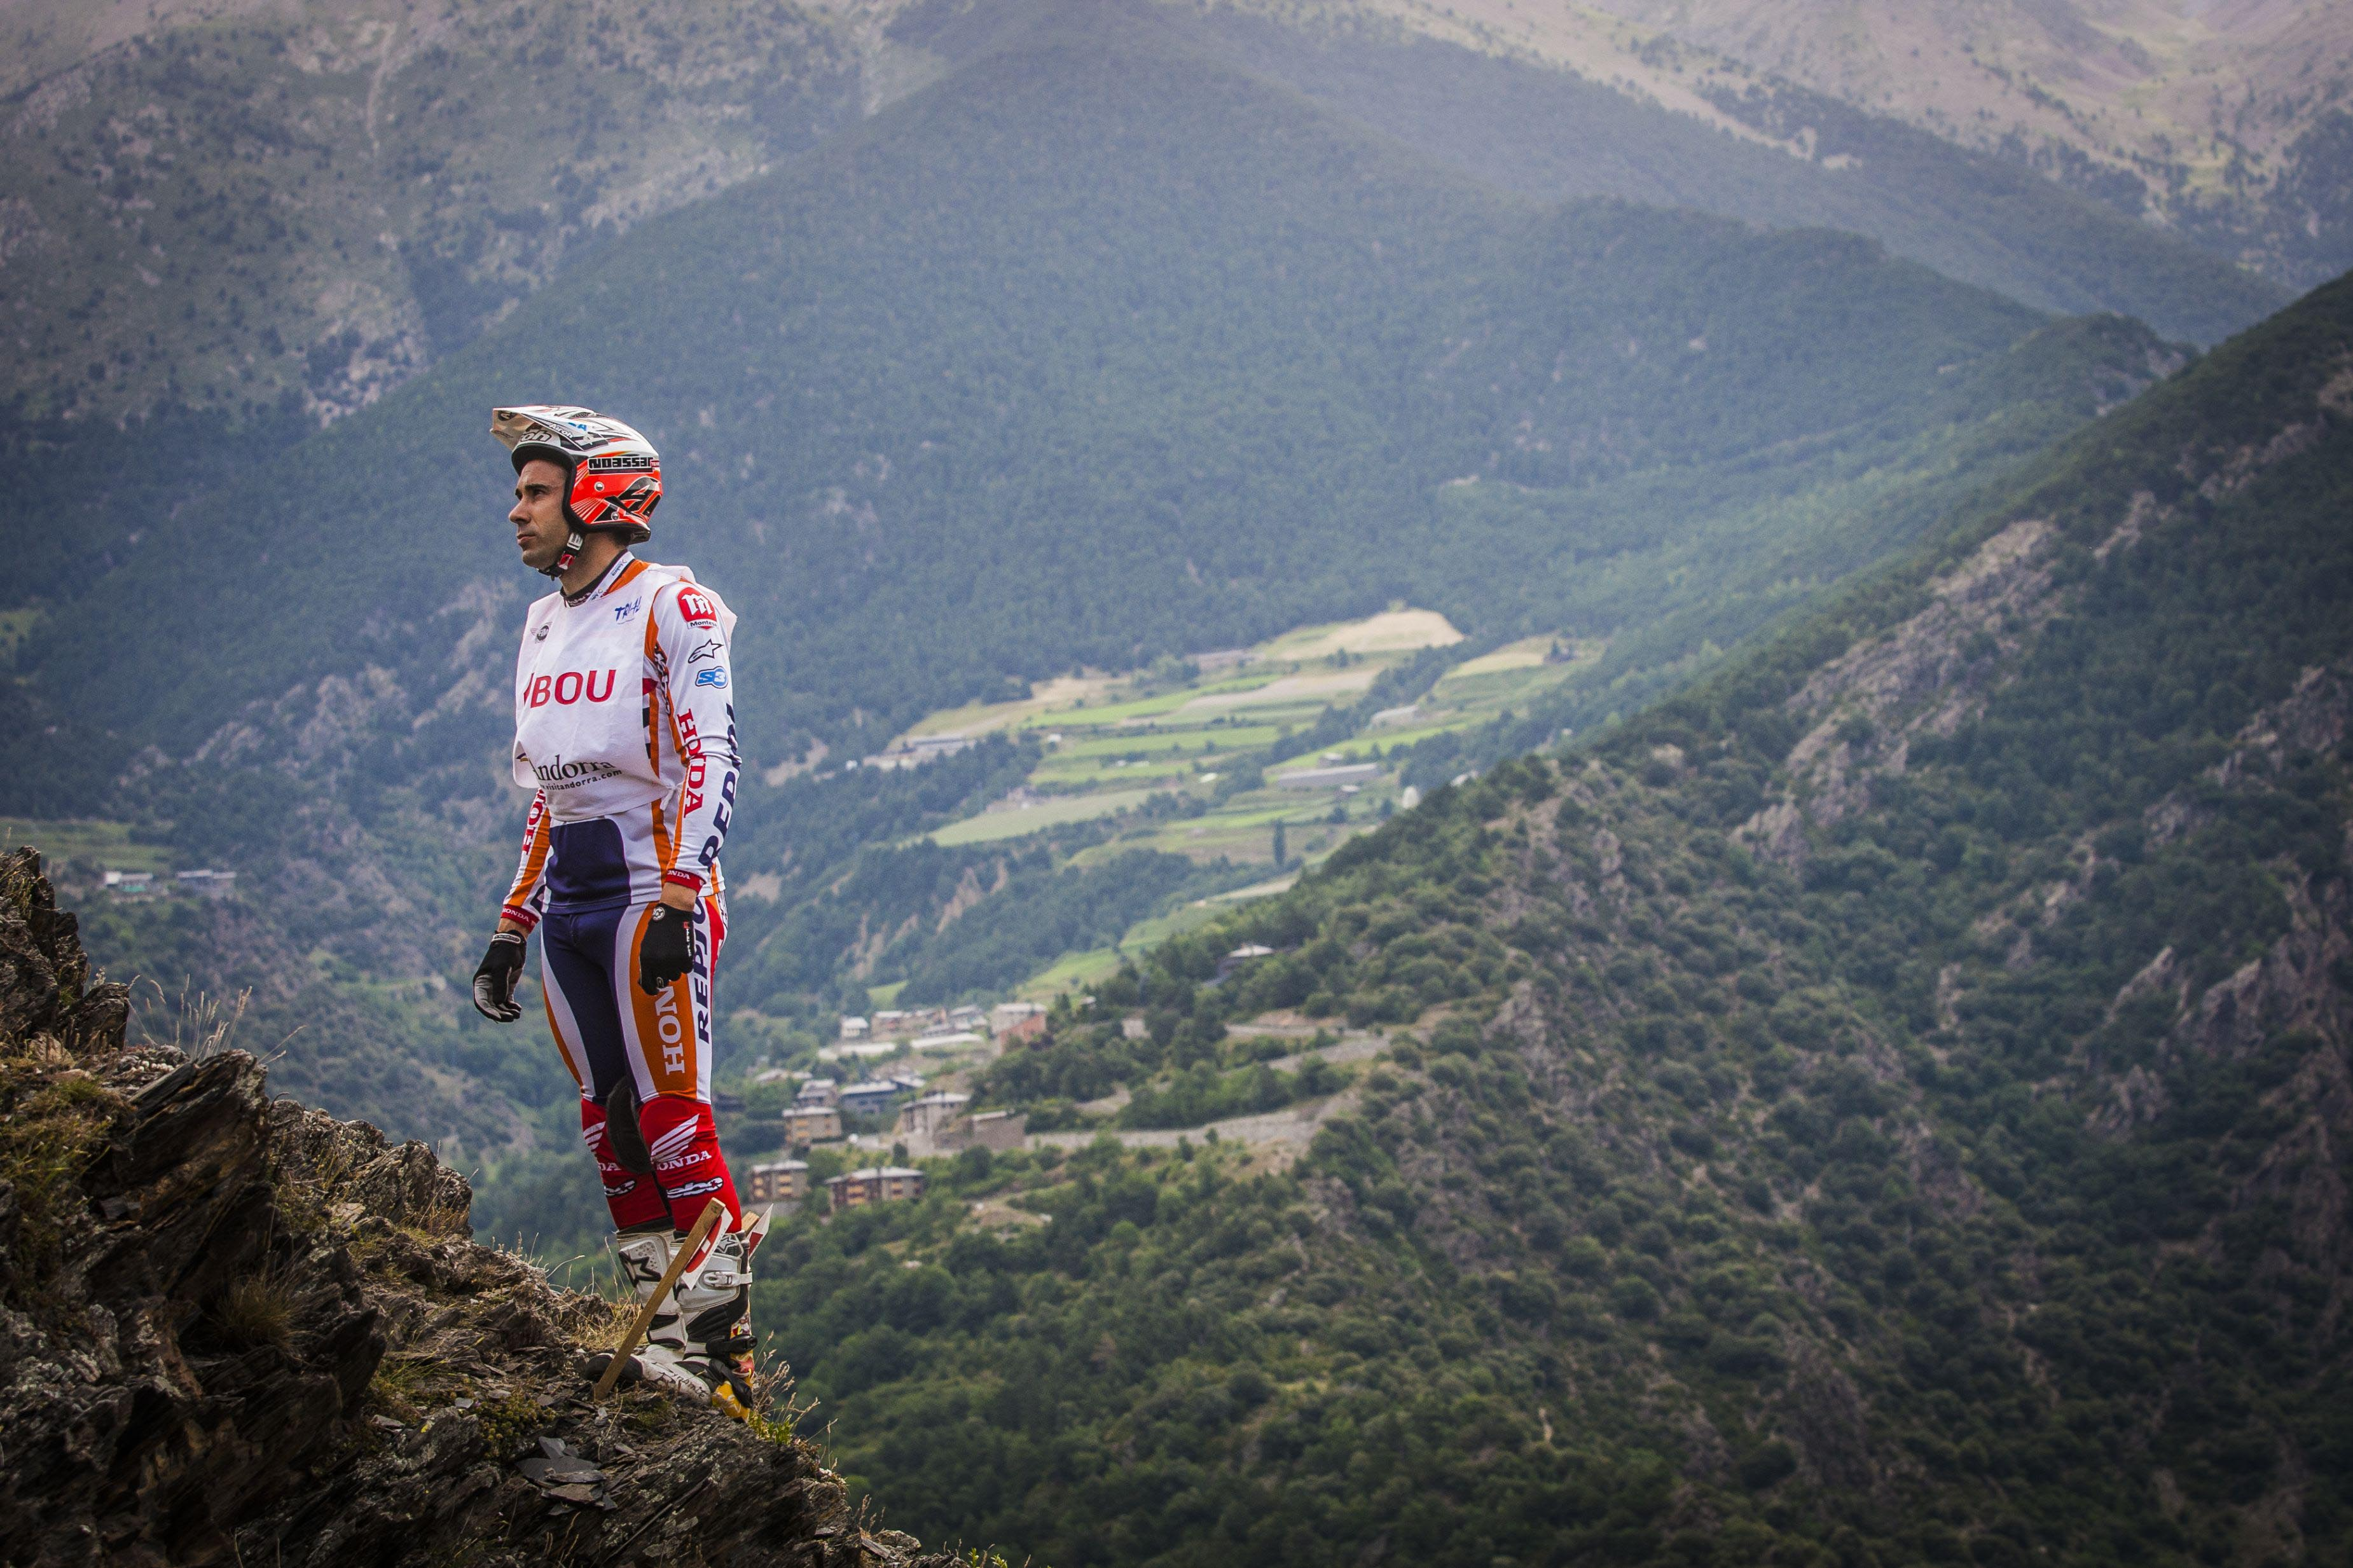 Toni Bou looking at a trial zone